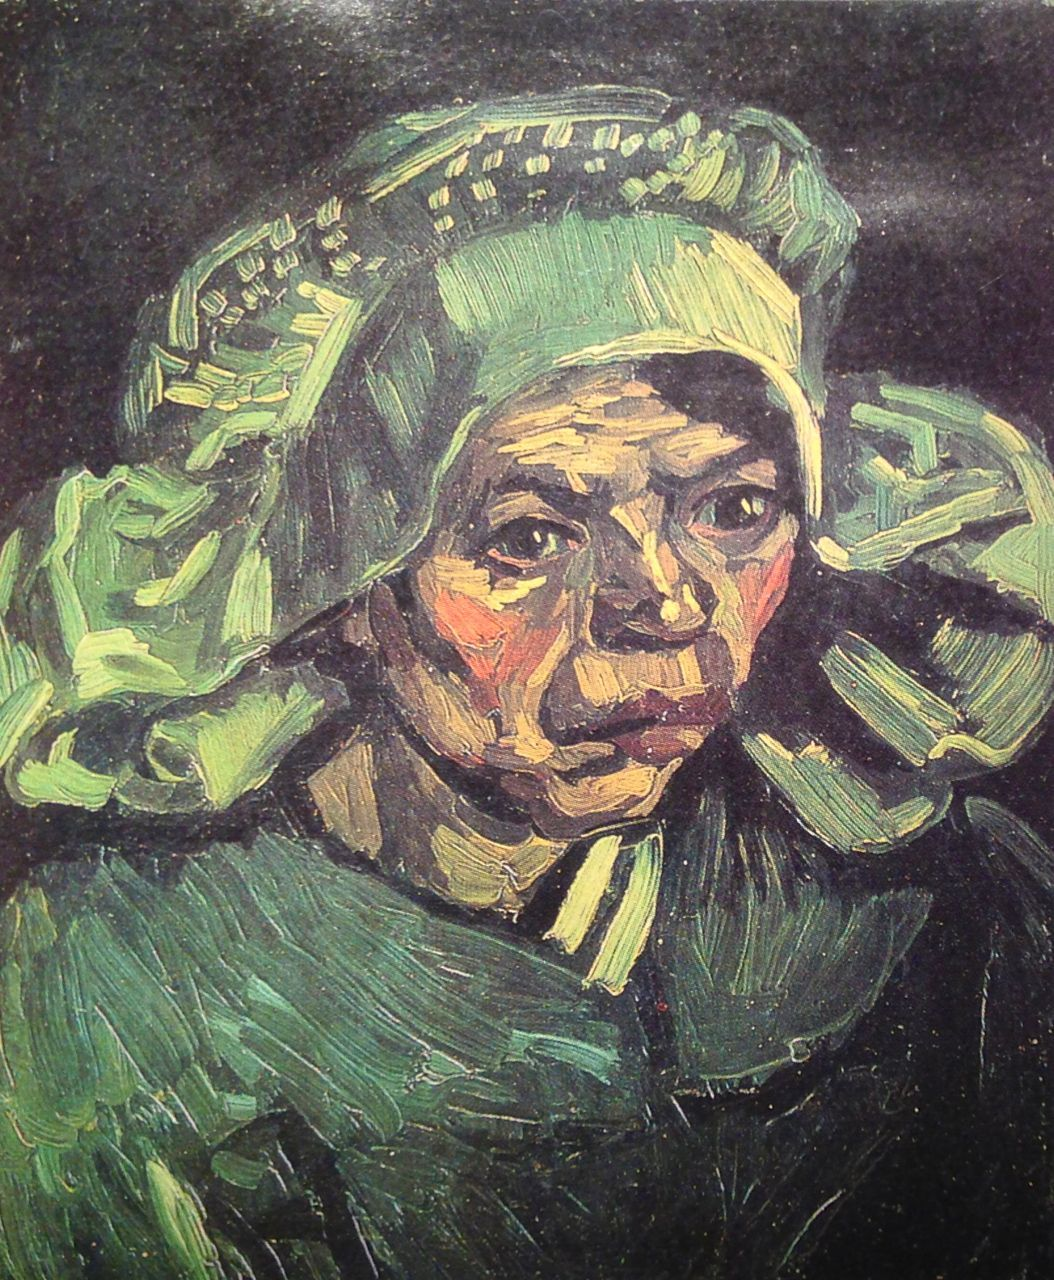 Vincent van Gogh. Head of a Peasant Woman with White Cap. Neunen, May 1885. Oil on canvas, 43.5x35.5cm. Amesterdam, Van Gogh Museum (Vincent van Gogh Foundation)